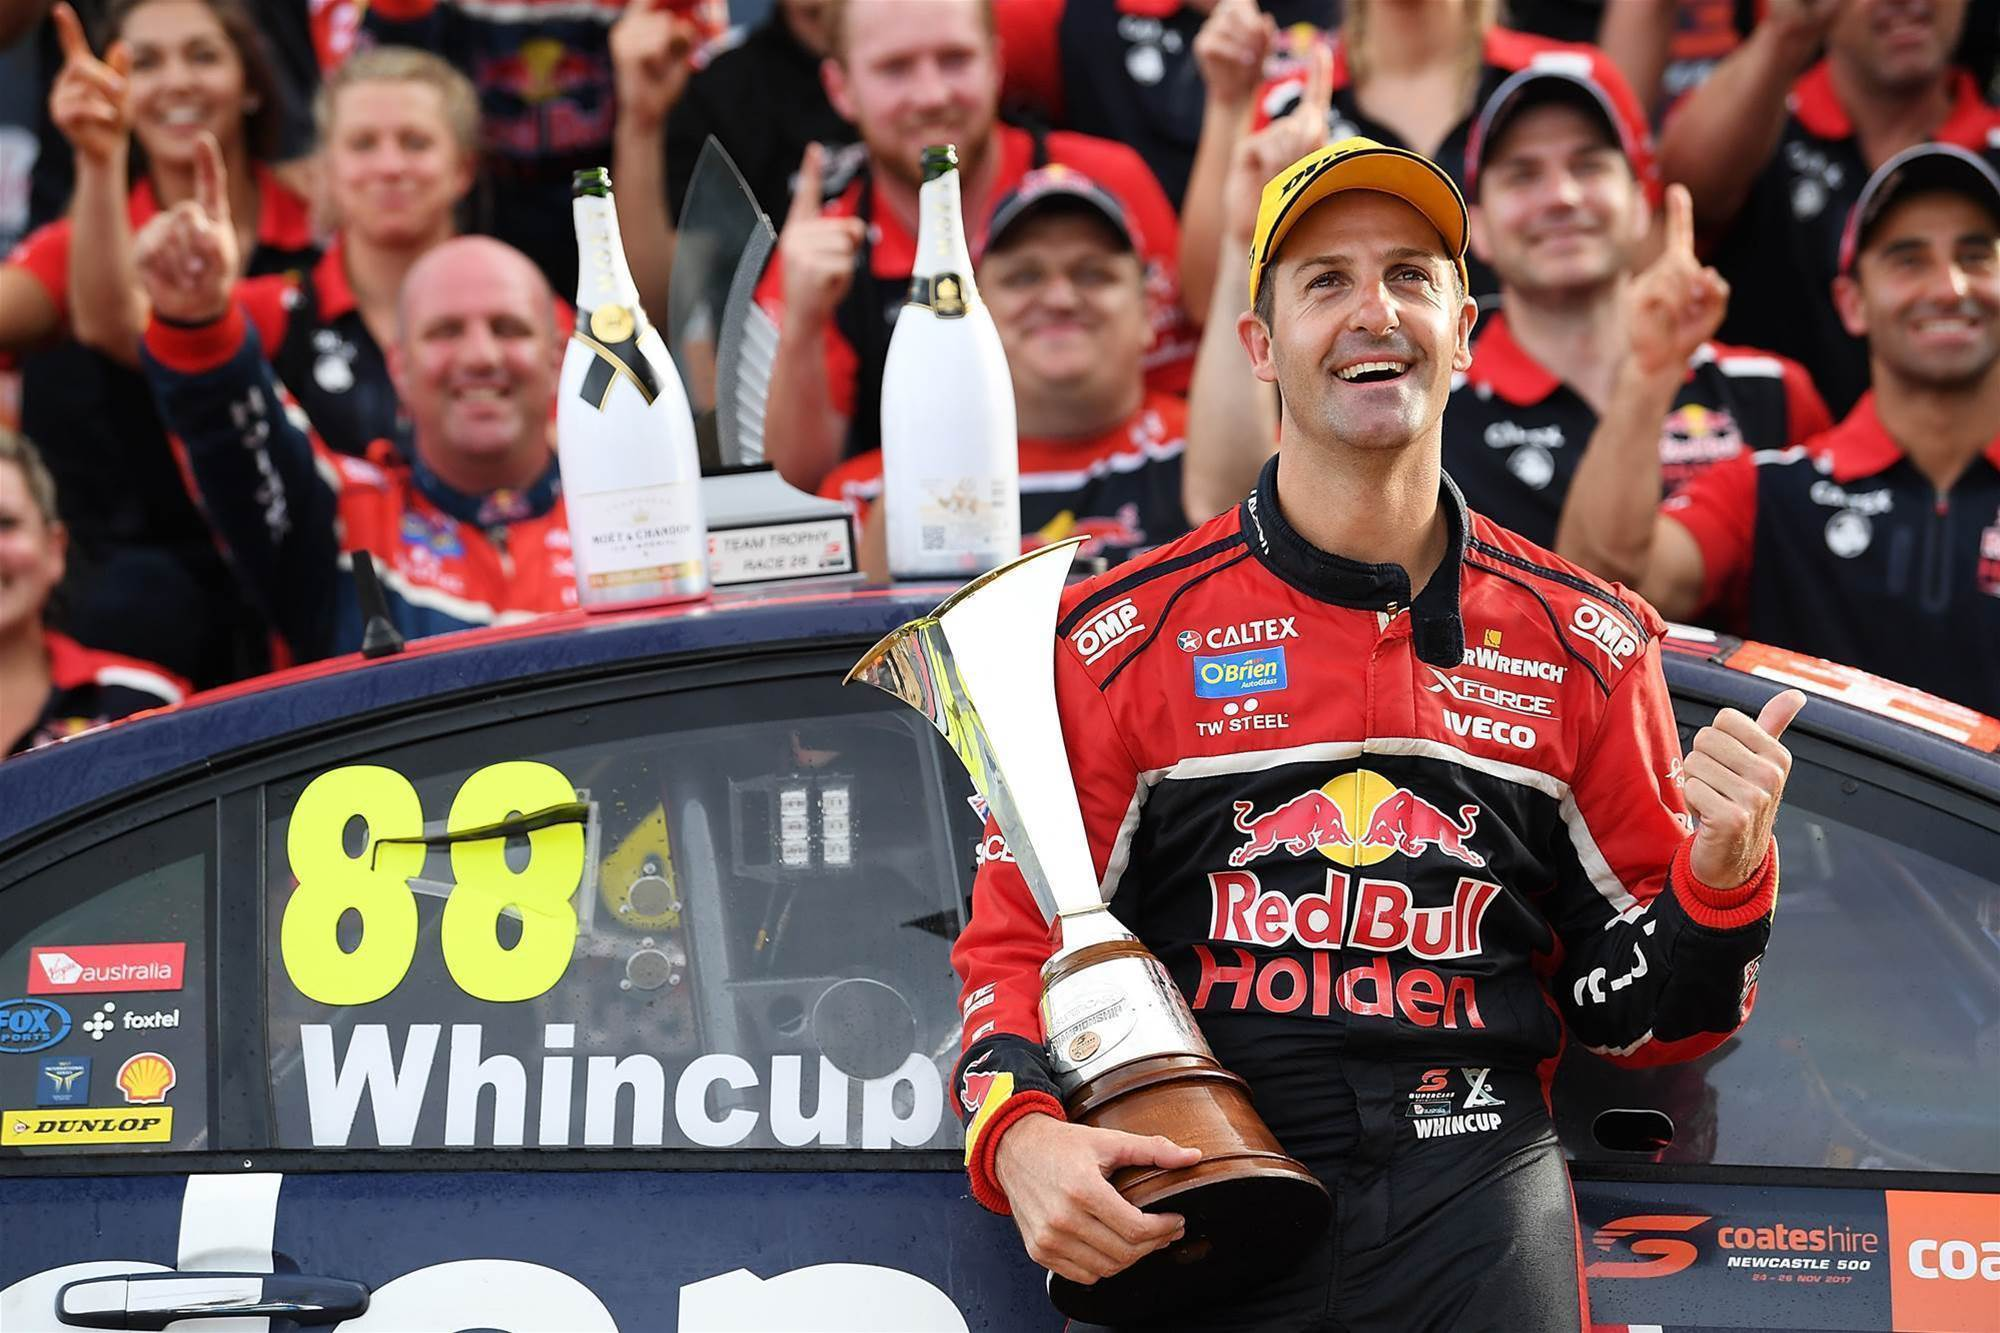 Whincup prevails in drama-filled Newcastle decider